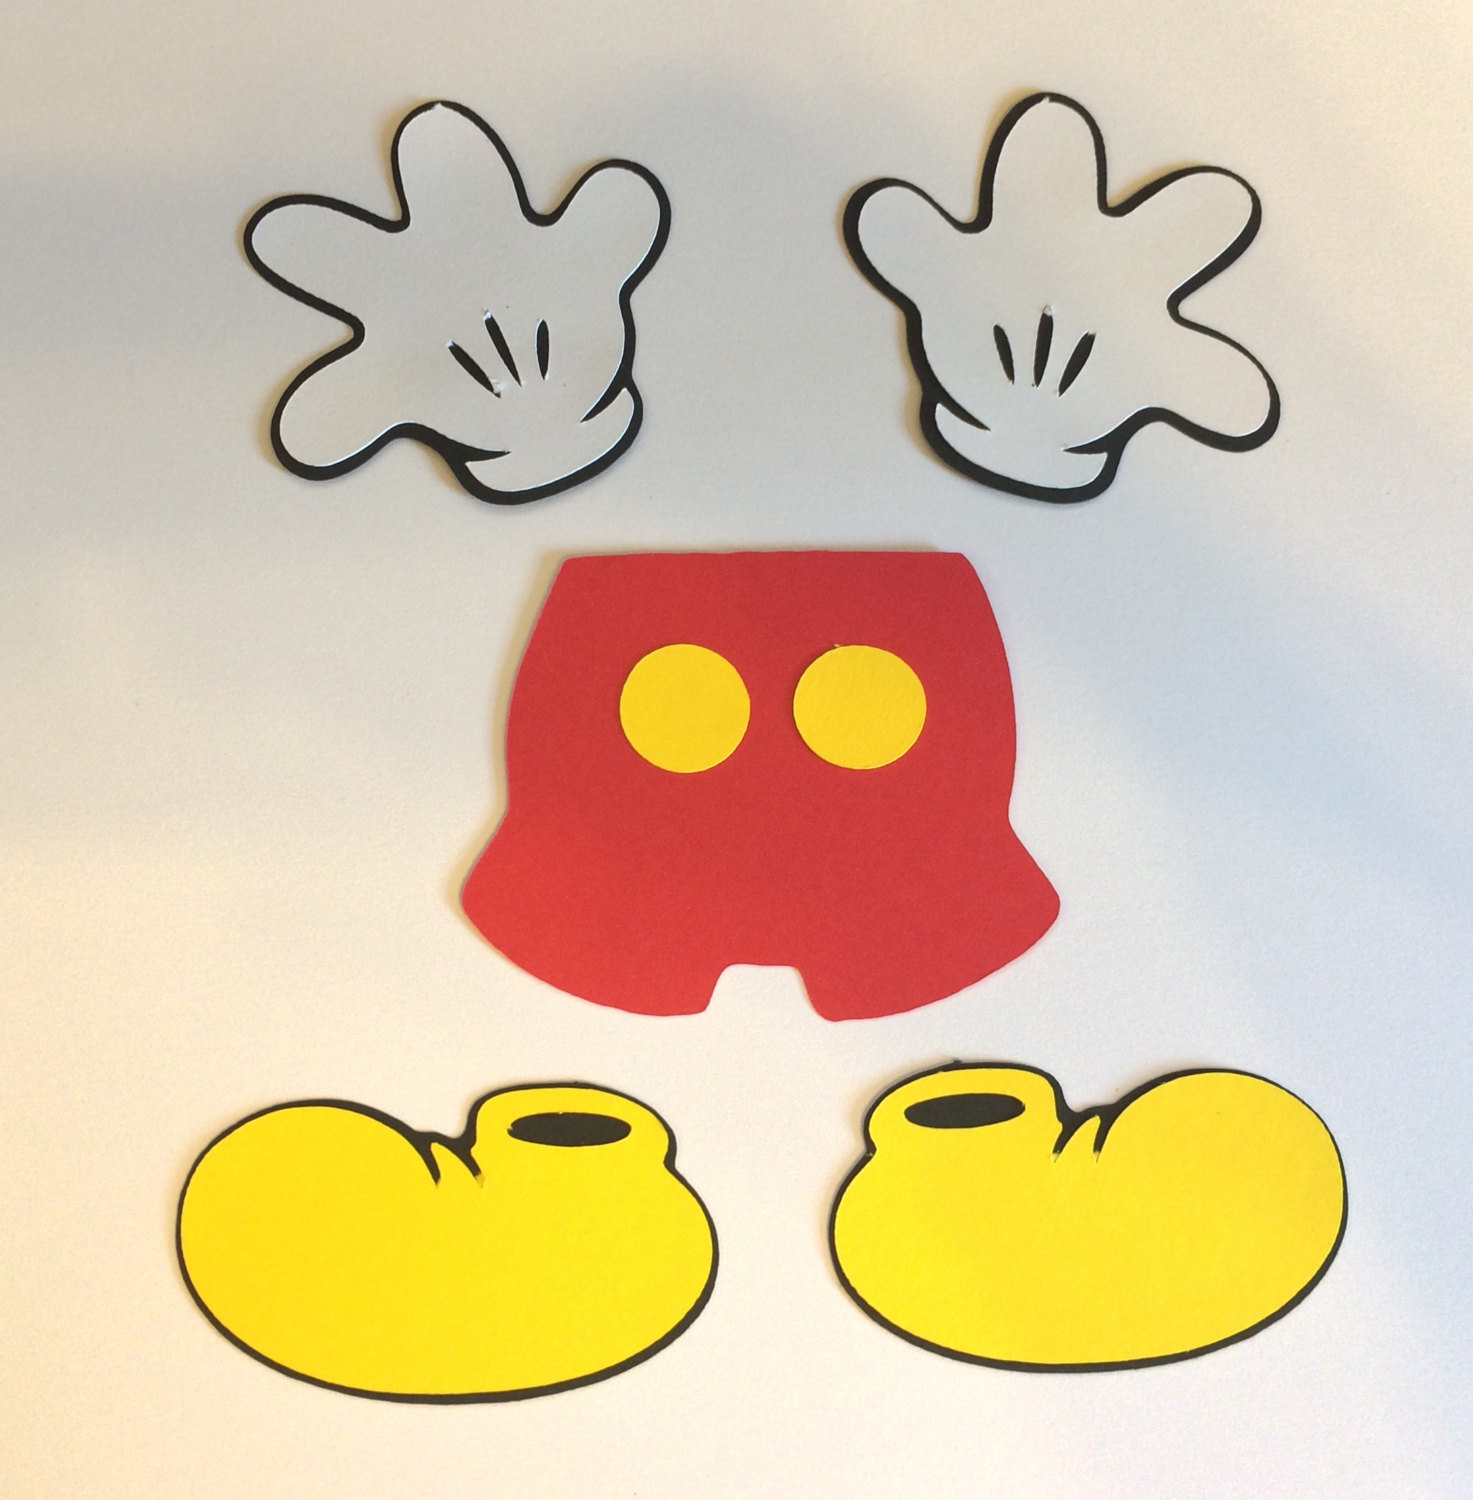 Free Mickey Mouse Cut Out Download Free Clip Art Free Clip Art On Clipart Library